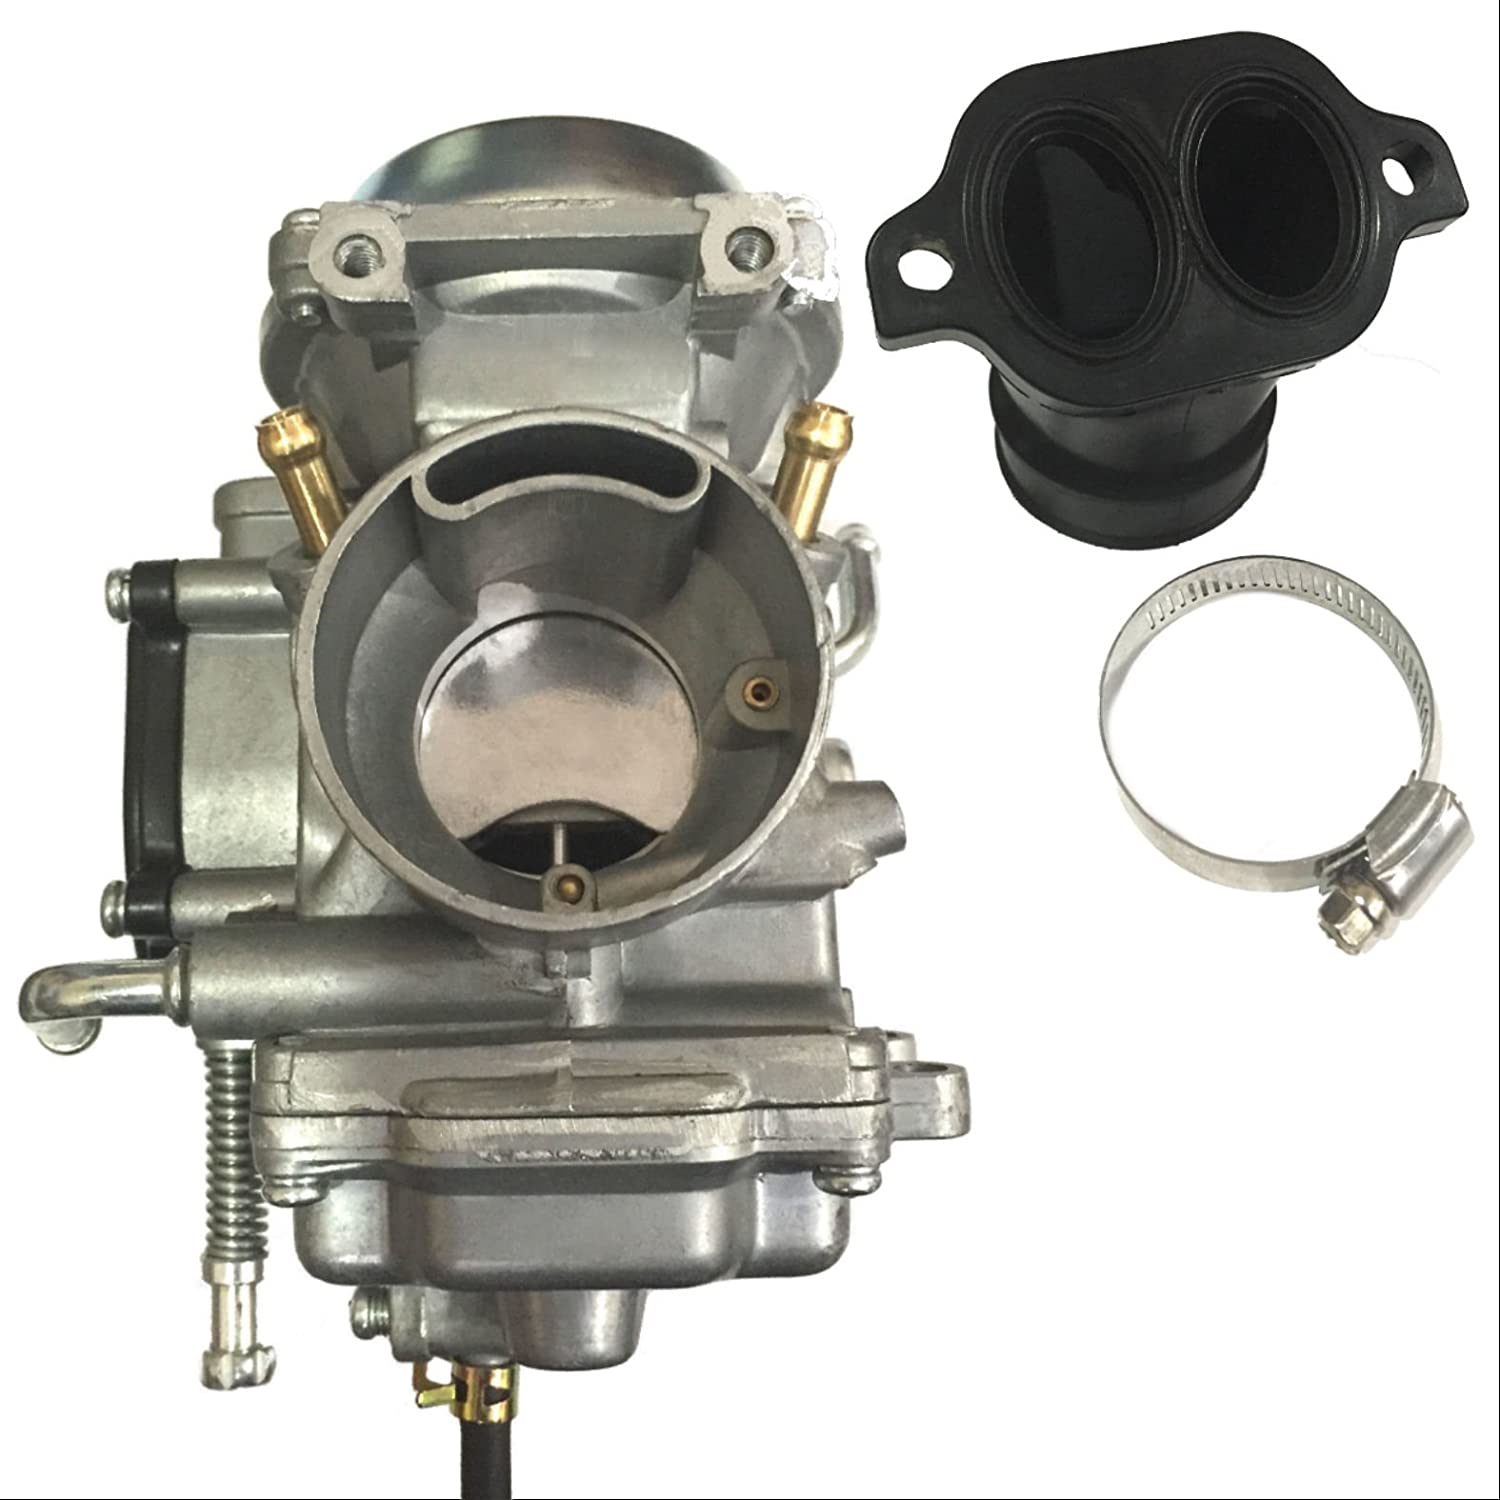 ZOOM ZOOM PARTS CARBURETOR INTAKE MANIFOLD ADAPTER BOOT FITS POLARIS SPORTSMAN 700 4X4 2002 2003 2004 2005 2006